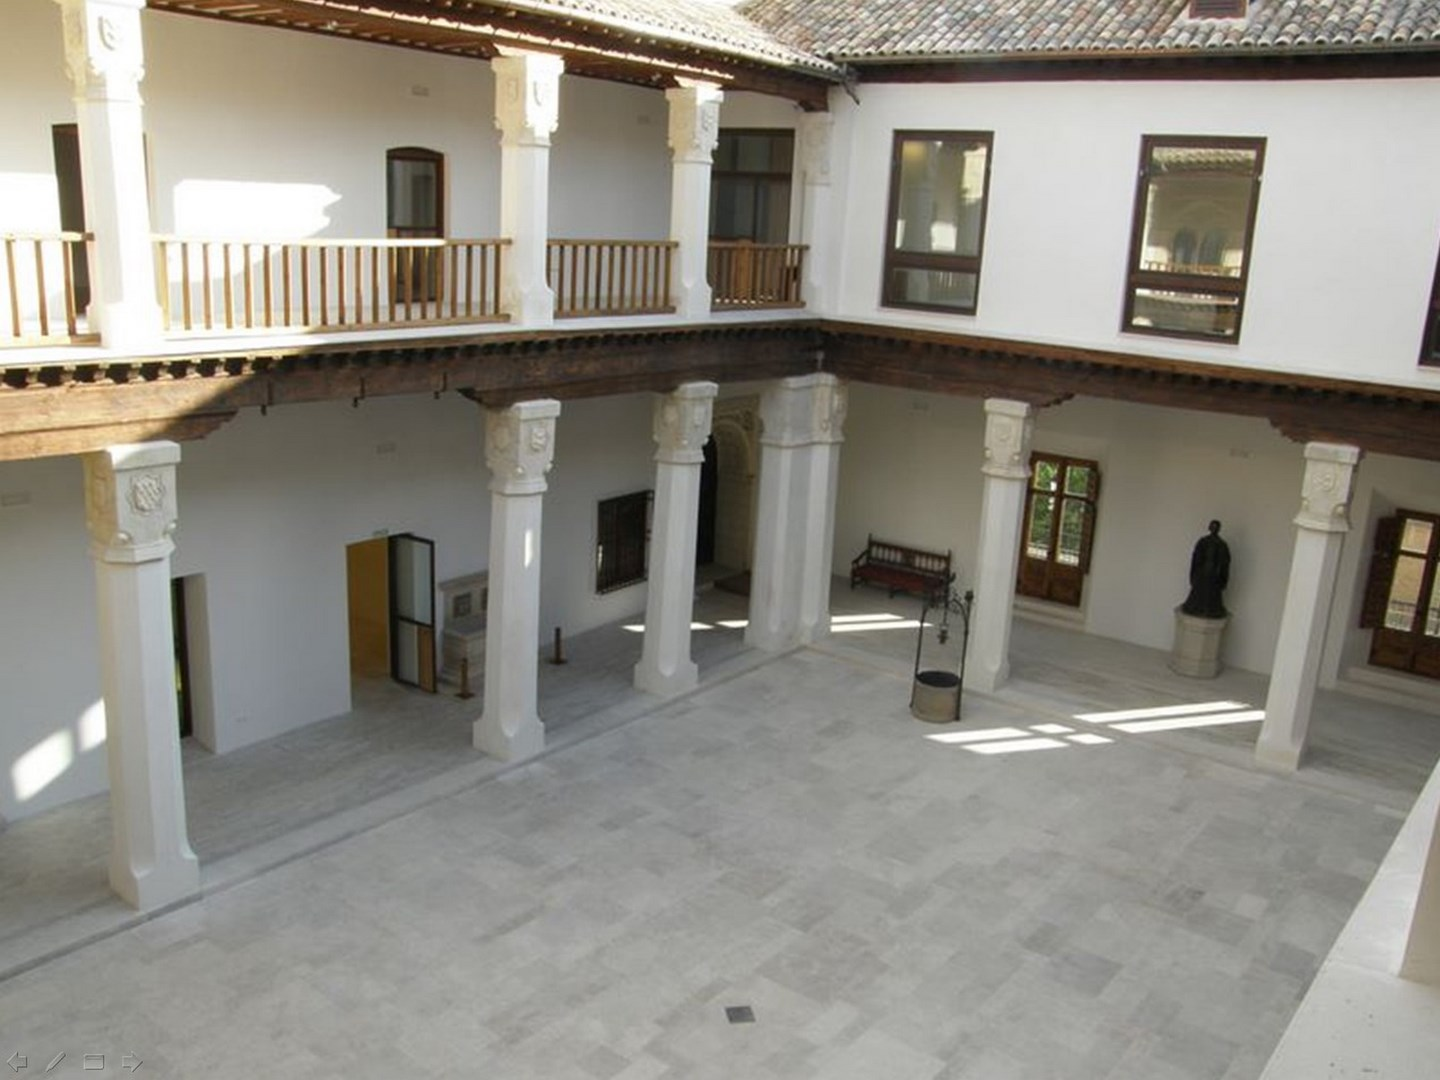 Restoration of the Palace of Fuensalida in Toledo